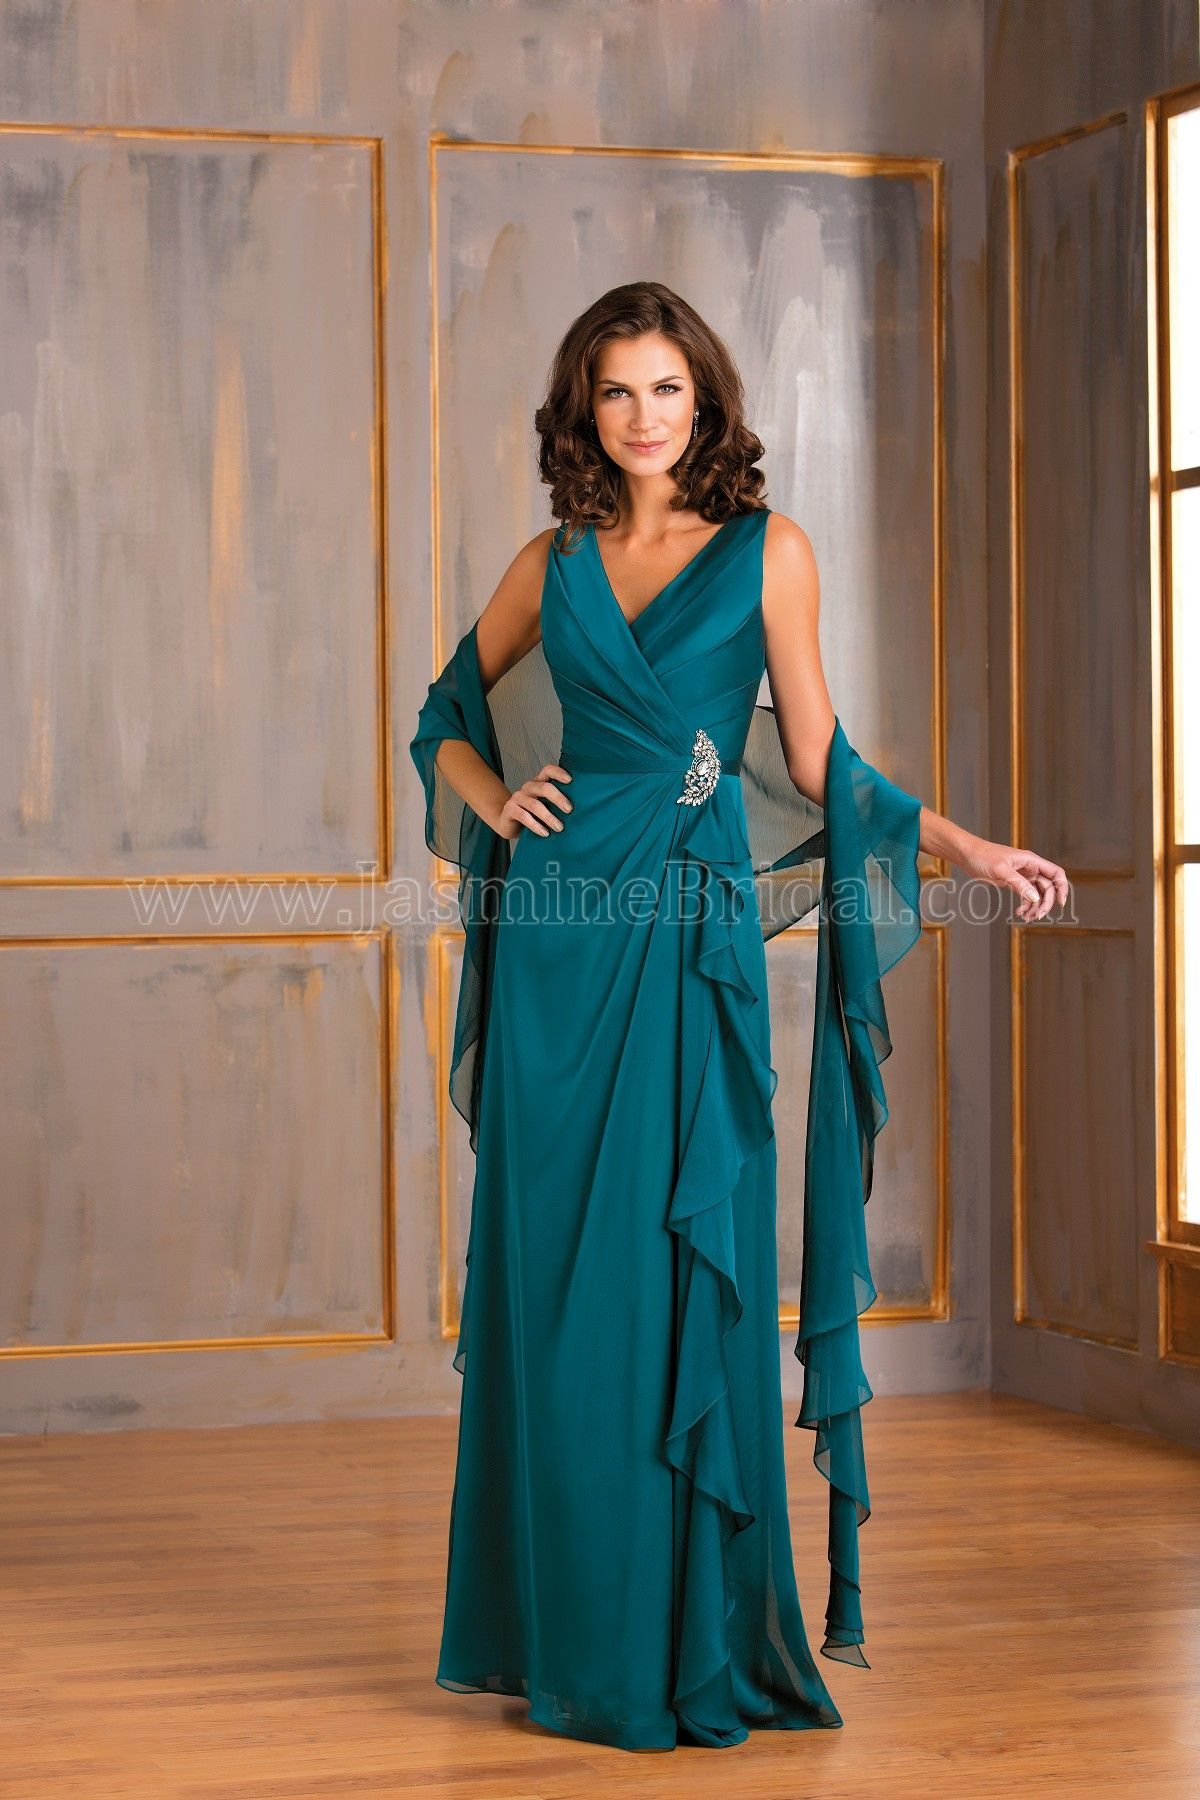 4921a70385 Jasmine Bridal Mother of the Bride Groom Dress Jade Style J175007 in Teal.  You will look ravishing in this simple